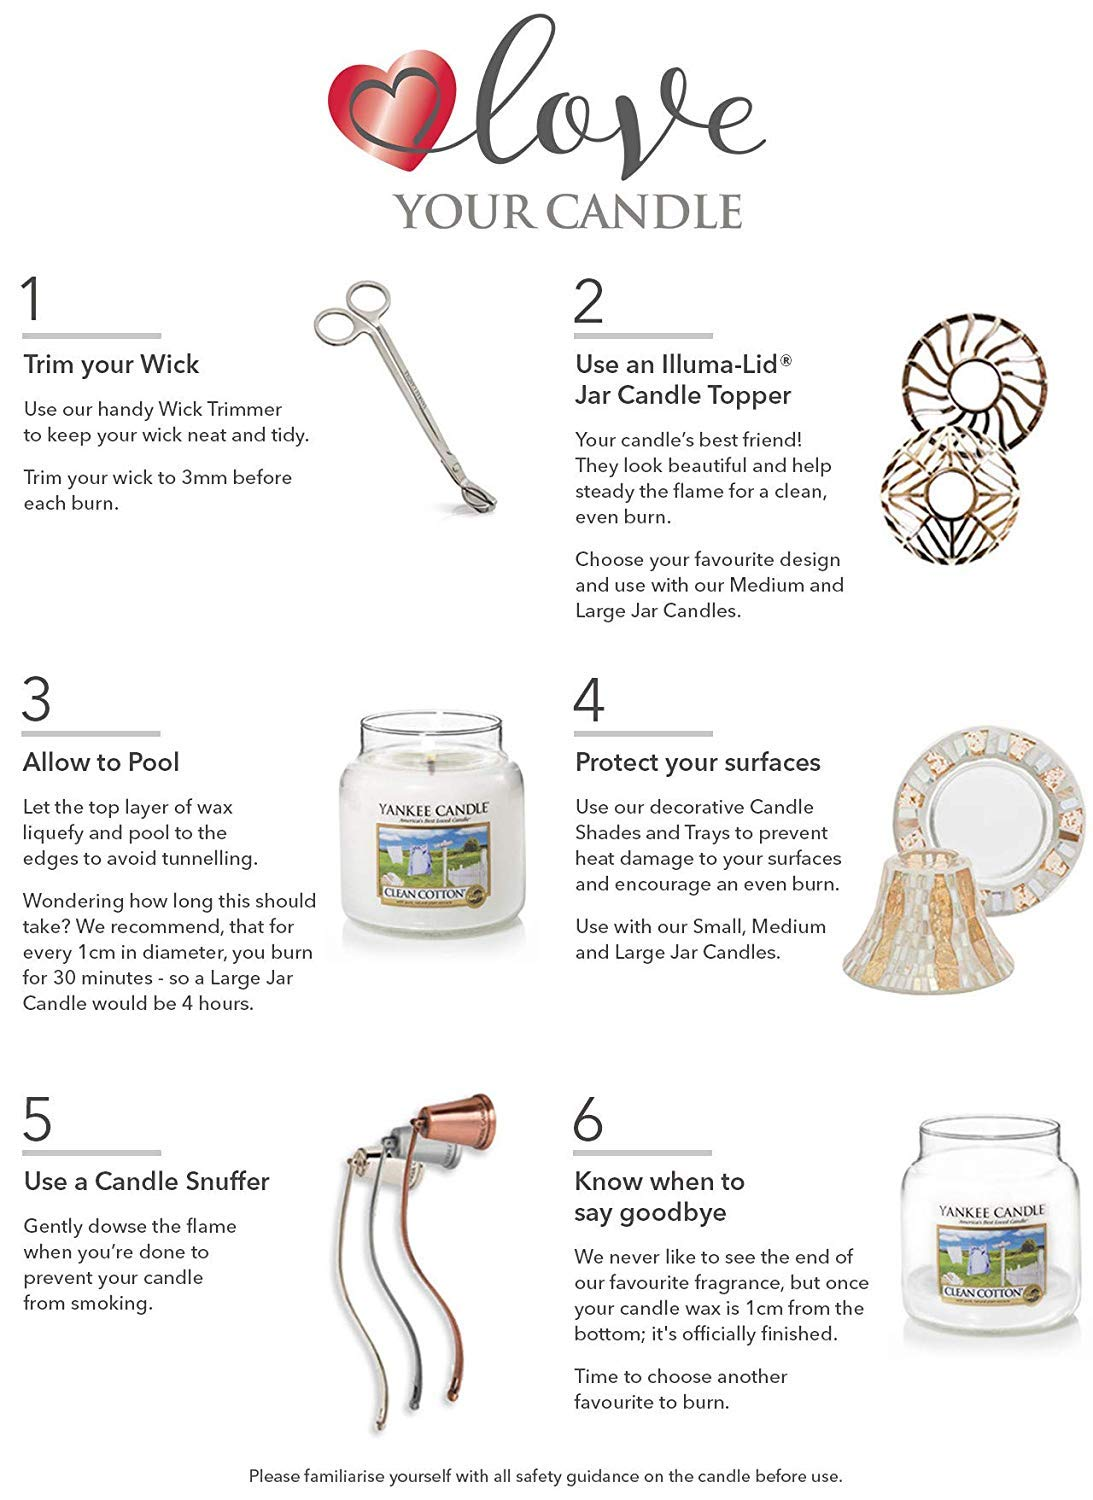 Candles Home Sweet Home - How to use